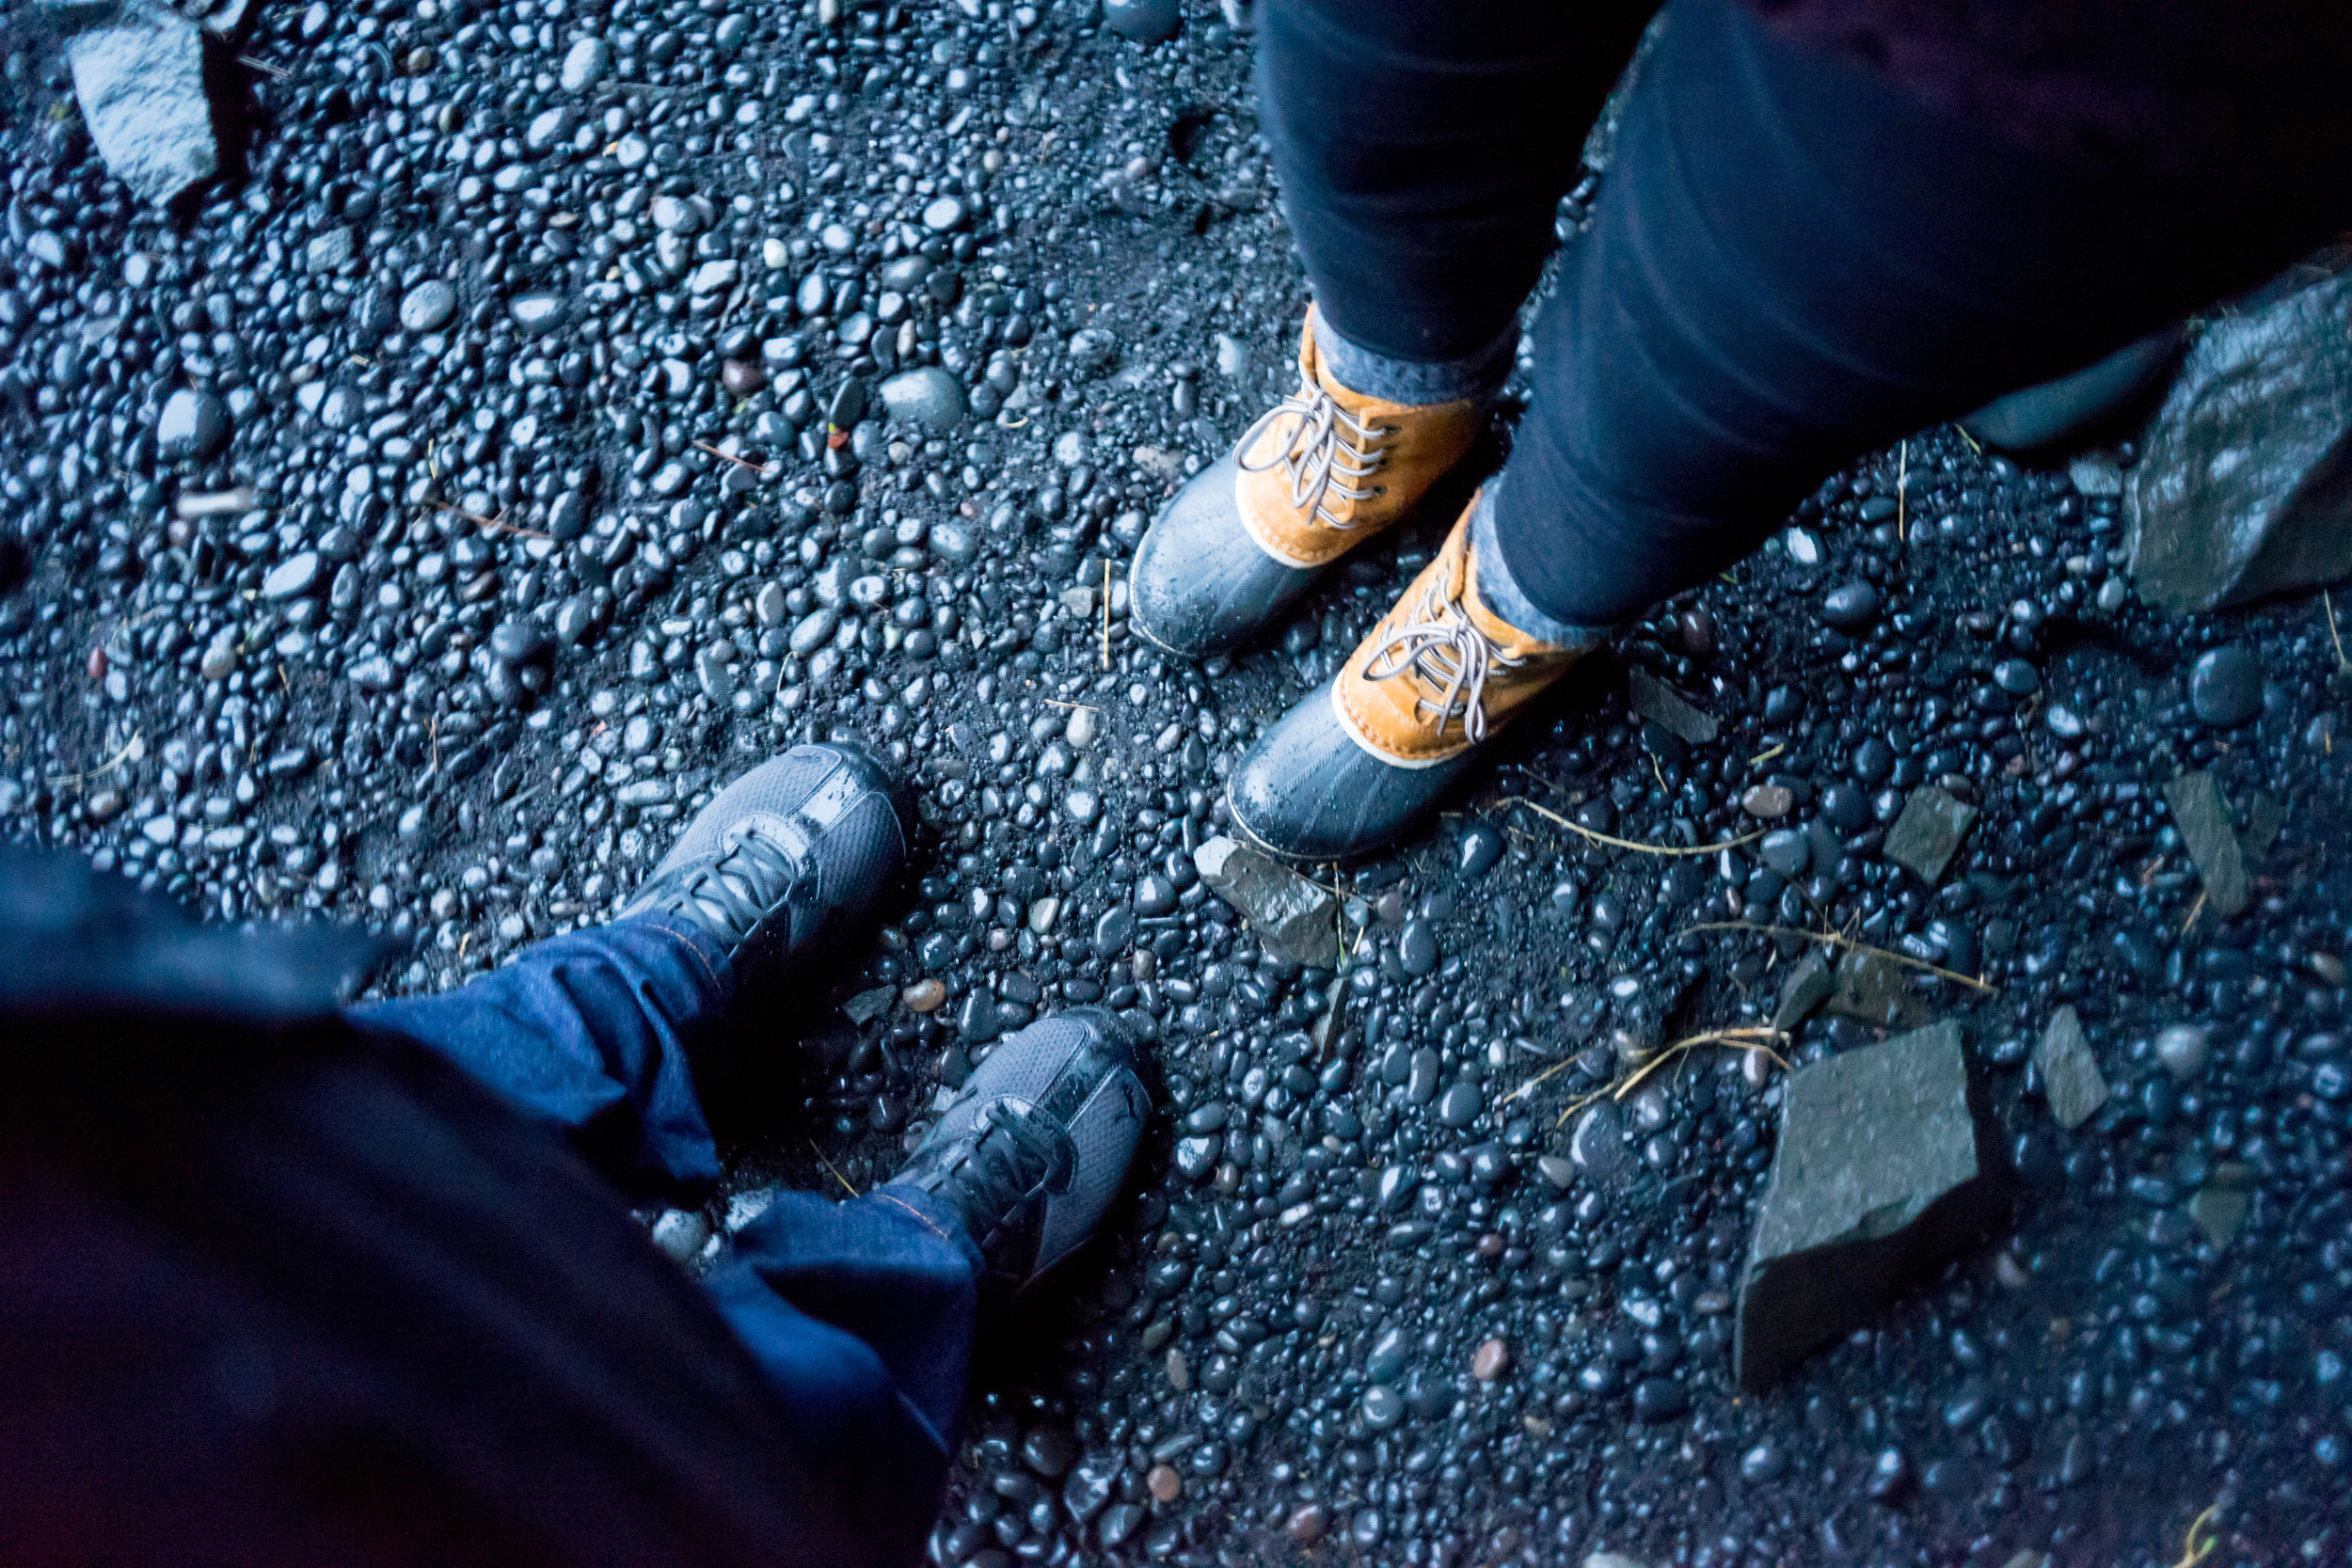 Maggie a la Mode - 9 Things No One Tells You About Roadtripping in Iceland Reynisdrangar Black Sand Beach.jpg